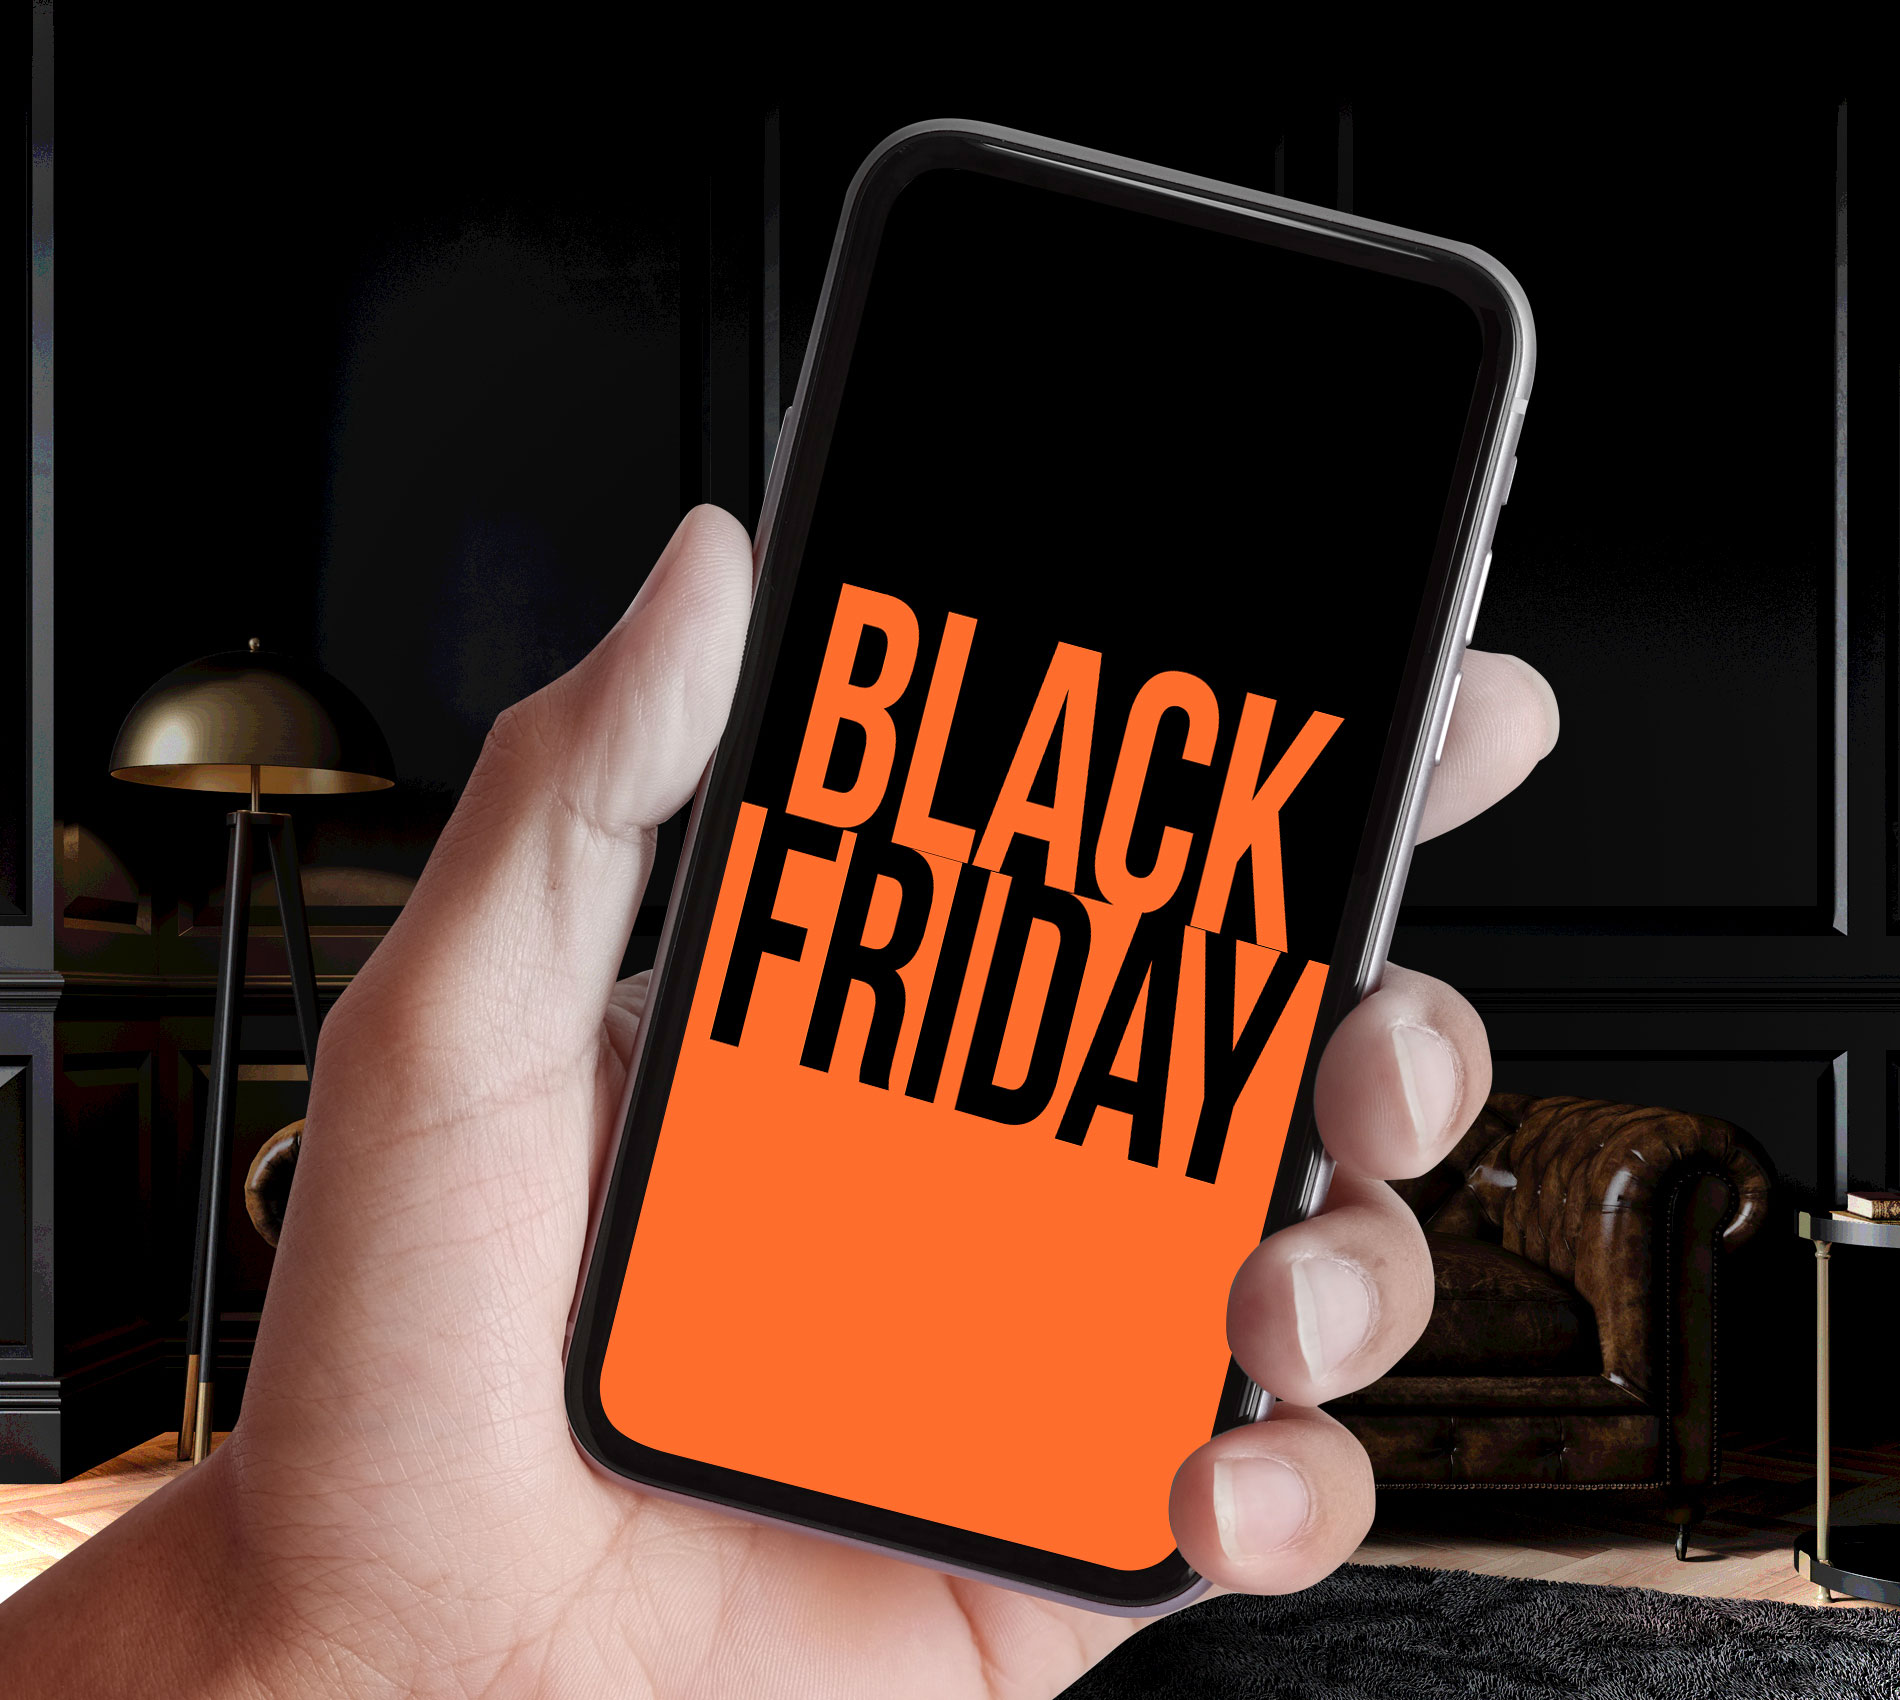 Expectations for m-commerce in this year's Black Friday edition